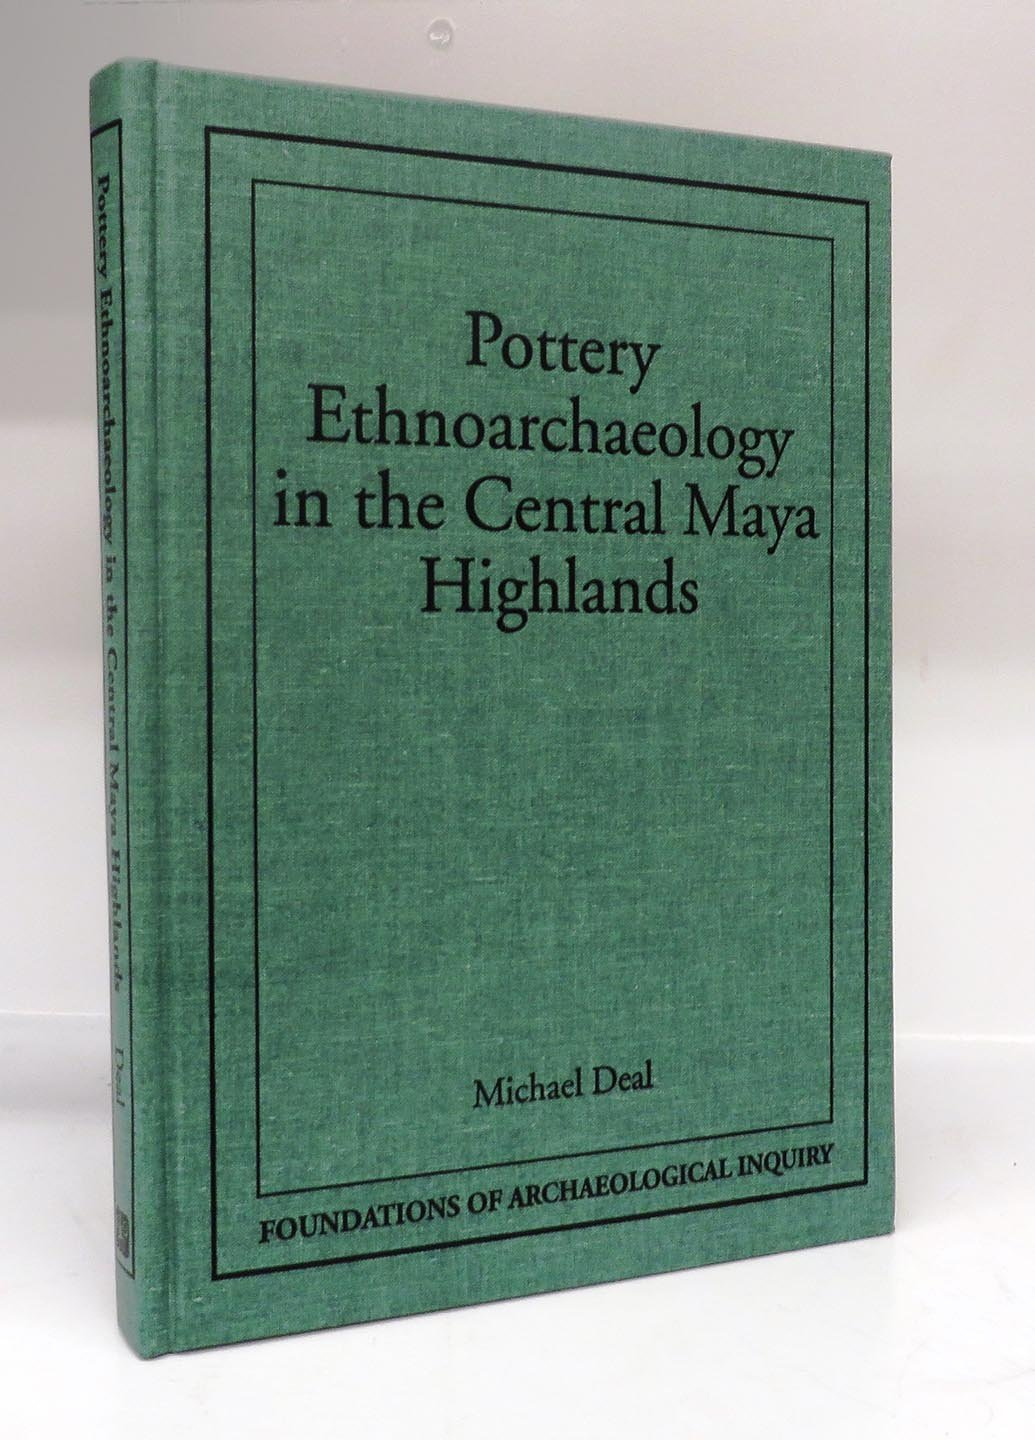 Pottery Ethnoarchaeology in the Central Maya Highlands